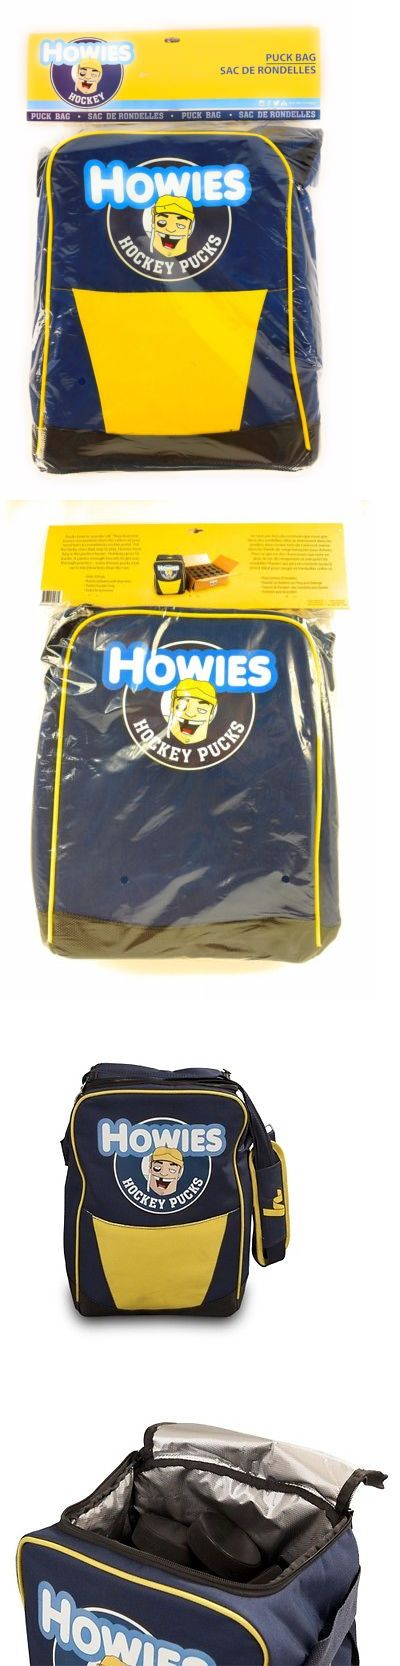 Equipment Bags 58113: Howies Hockey Tape Puck Bag Cooler Holds 50 Pucks Or Your Favorite Beverages -> BUY IT NOW ONLY: $35.98 on eBay!